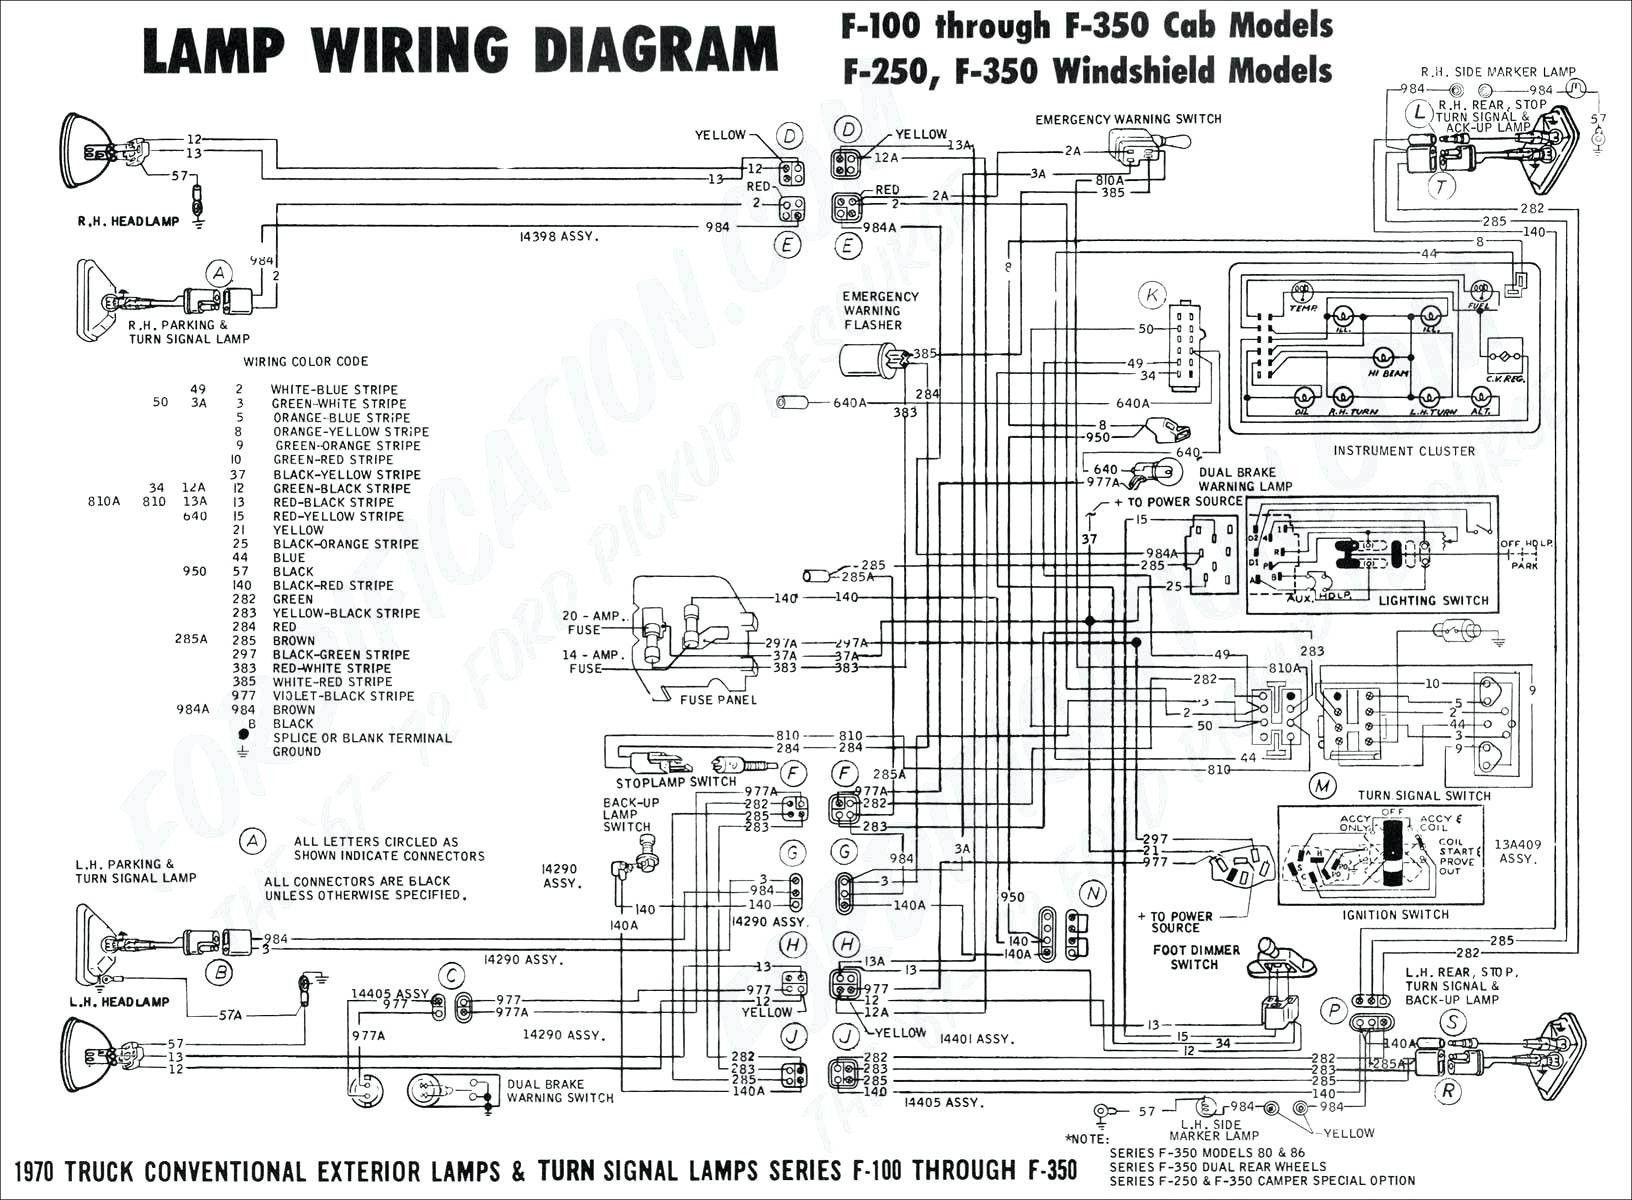 2002 Jeep Liberty Wiring Diagram Trailer Wiring Diagram Electrical Wiring Diagram Diagram